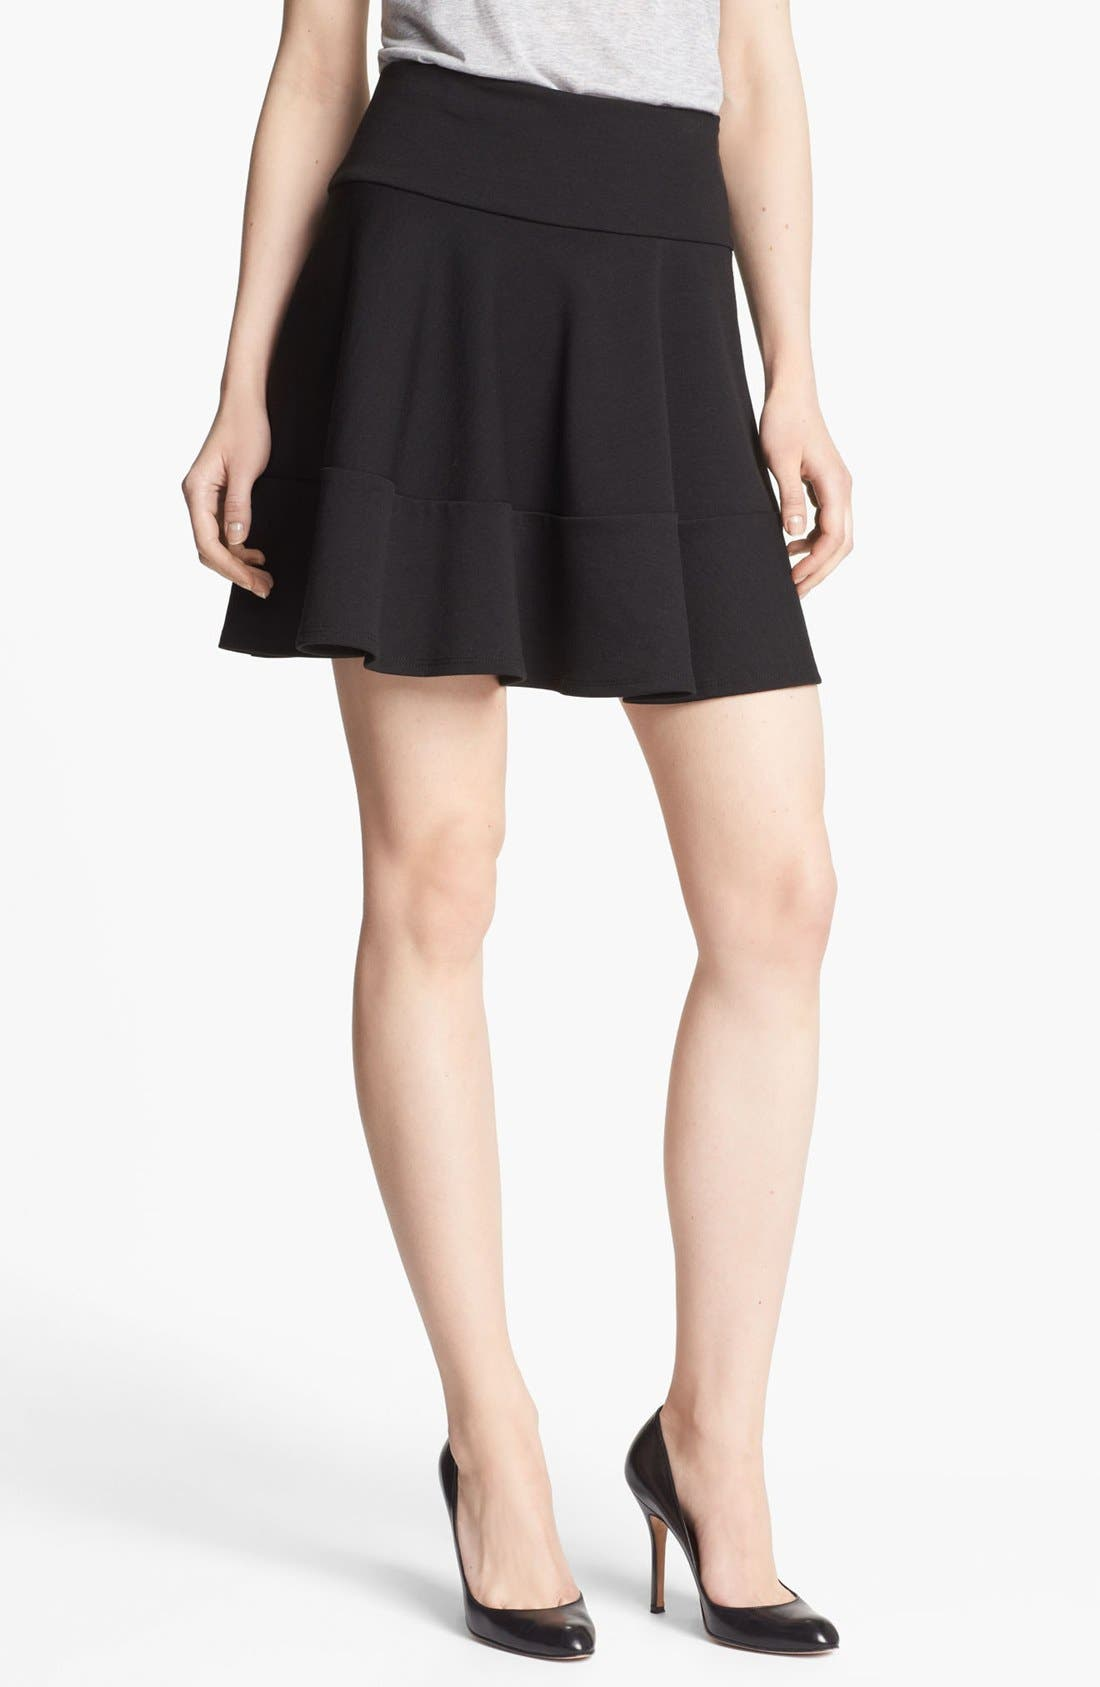 Alternate Image 1 Selected - Robbi & Nikki Tiered Flare Skirt